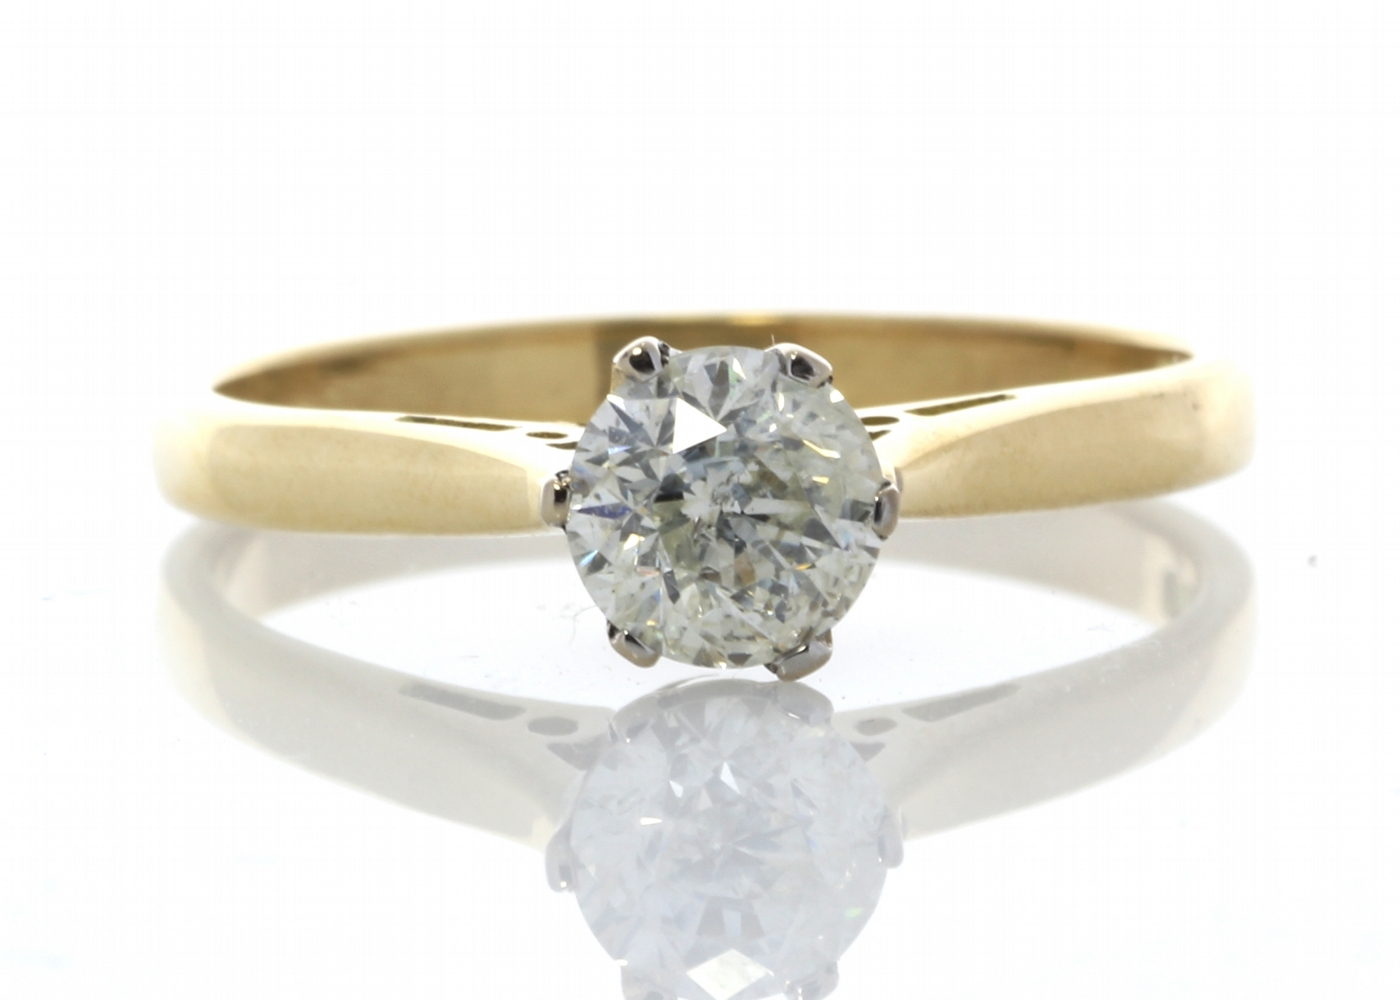 18ct Yellow Gold Diamond Engagement Ring 0.61 Carats